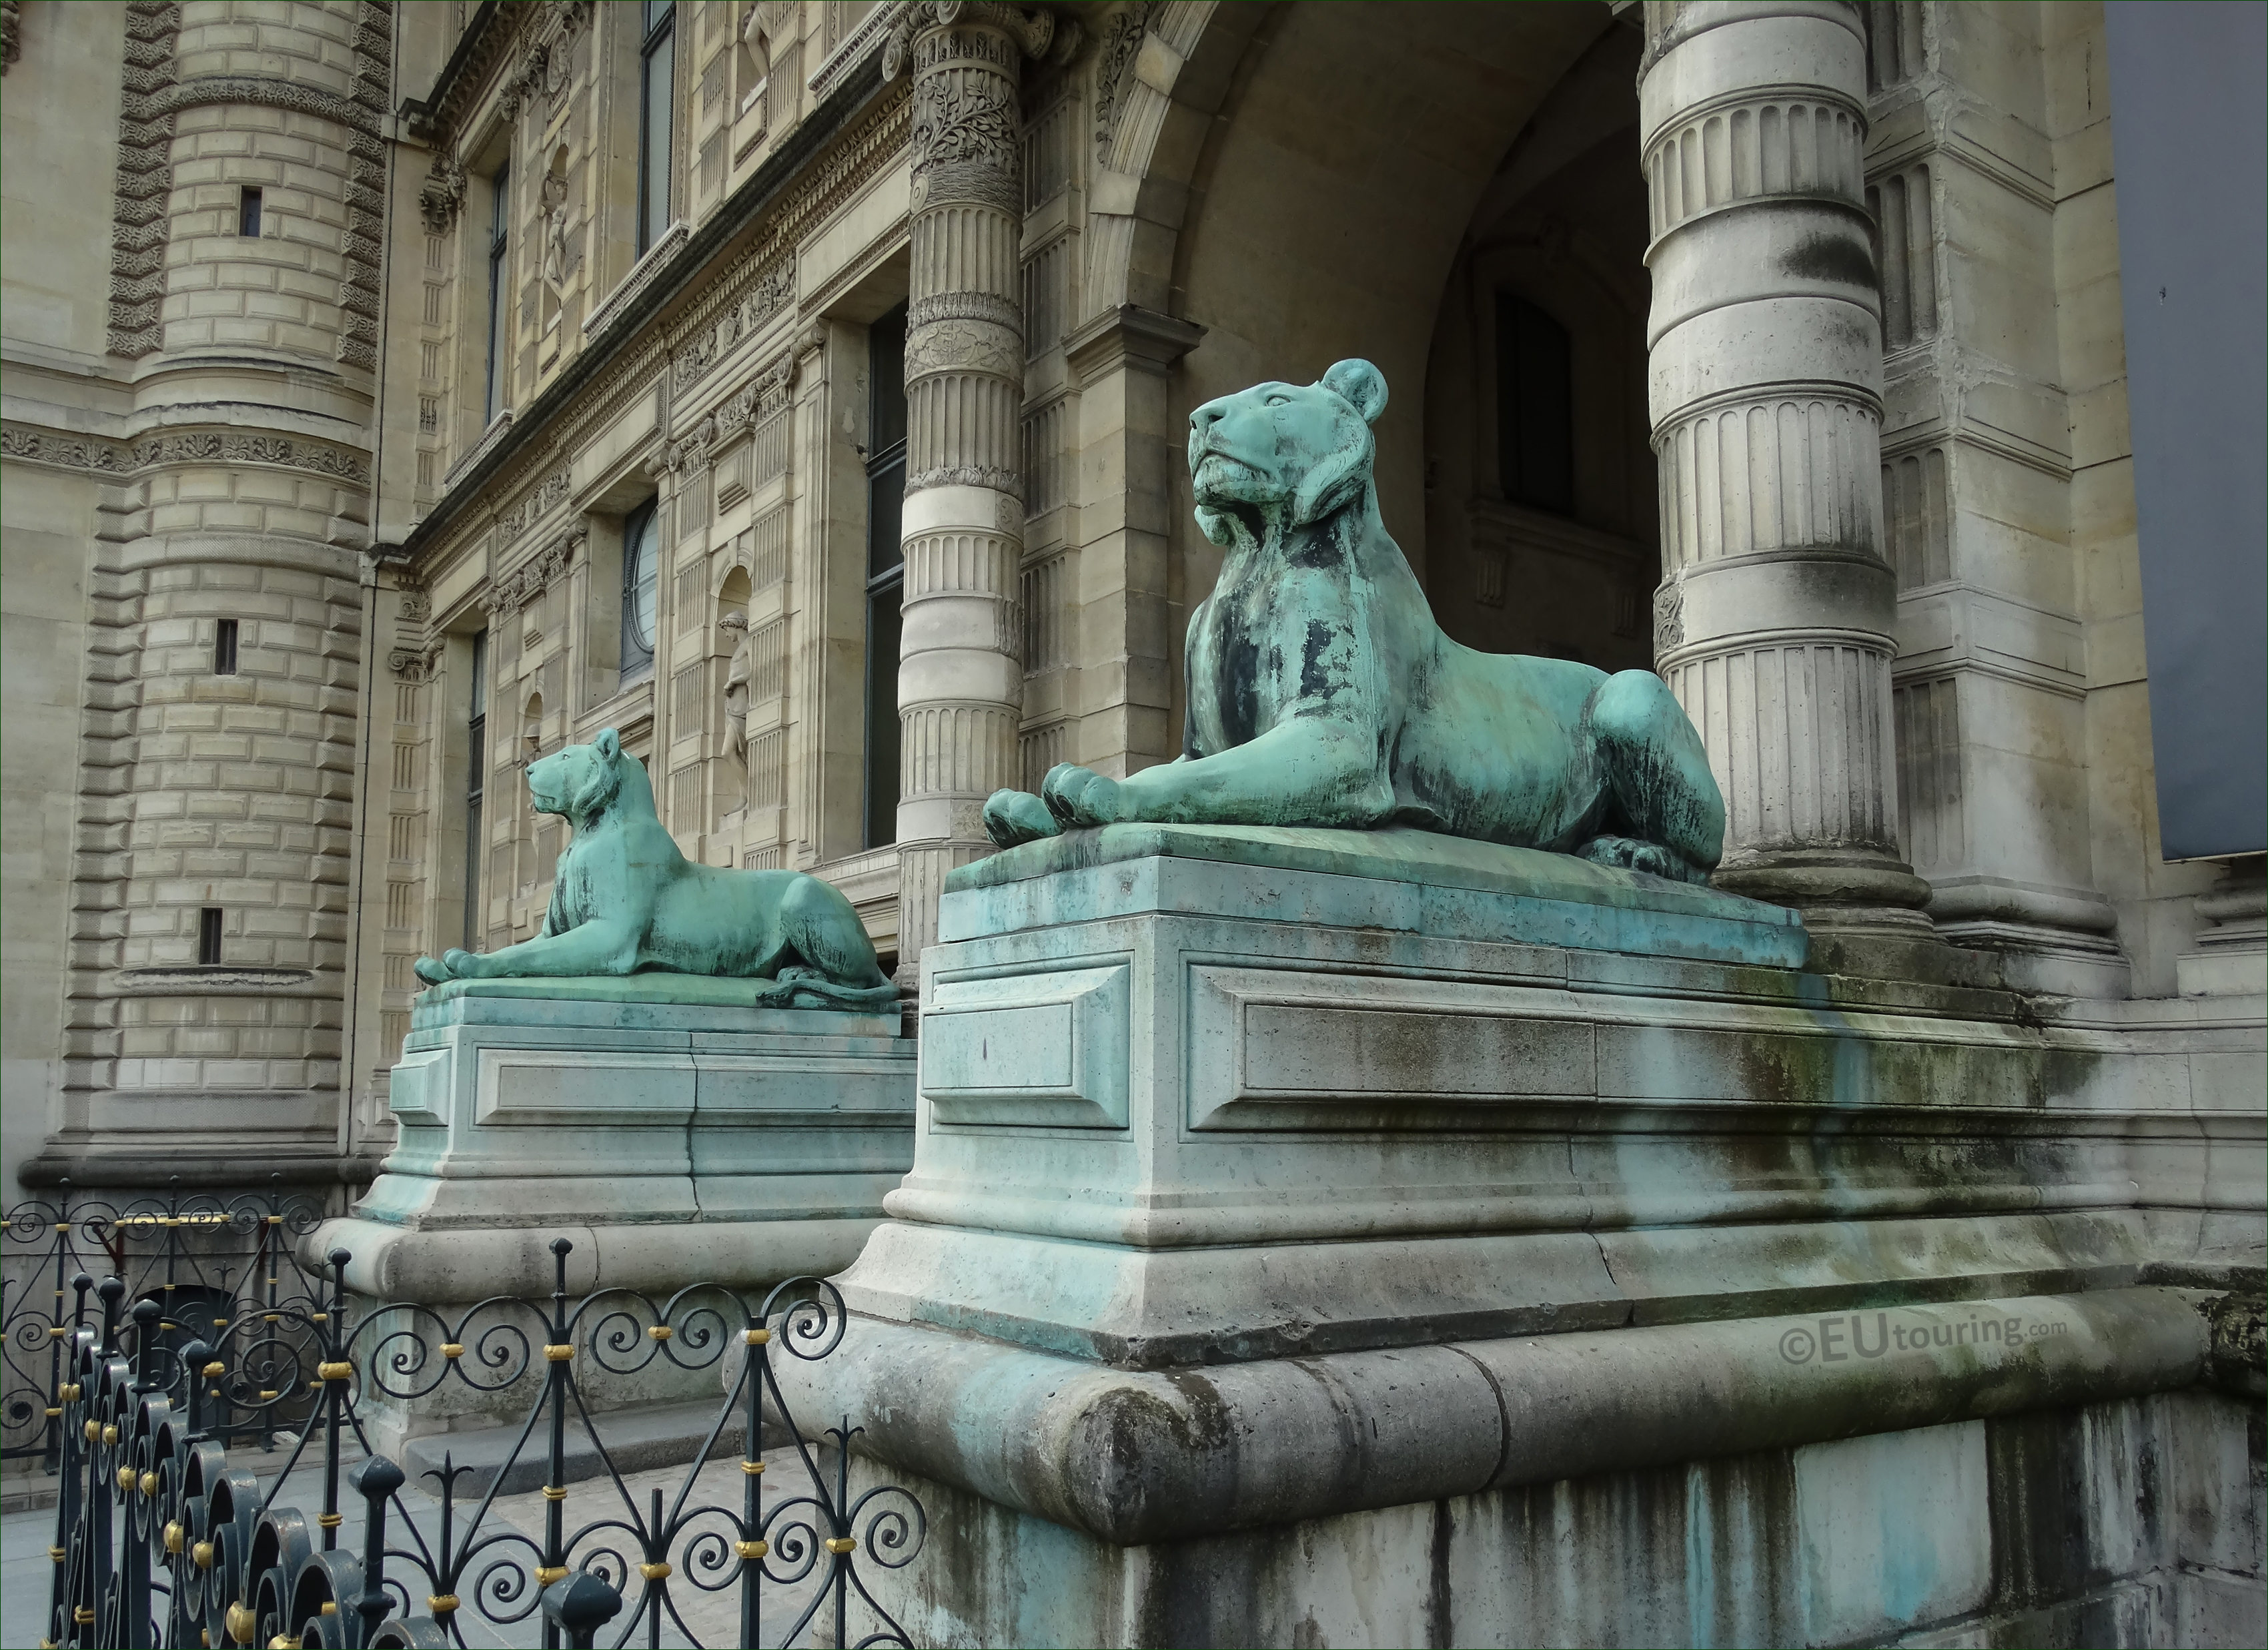 Photos Of Lion Statues By Auguste Cain On Aile Flore